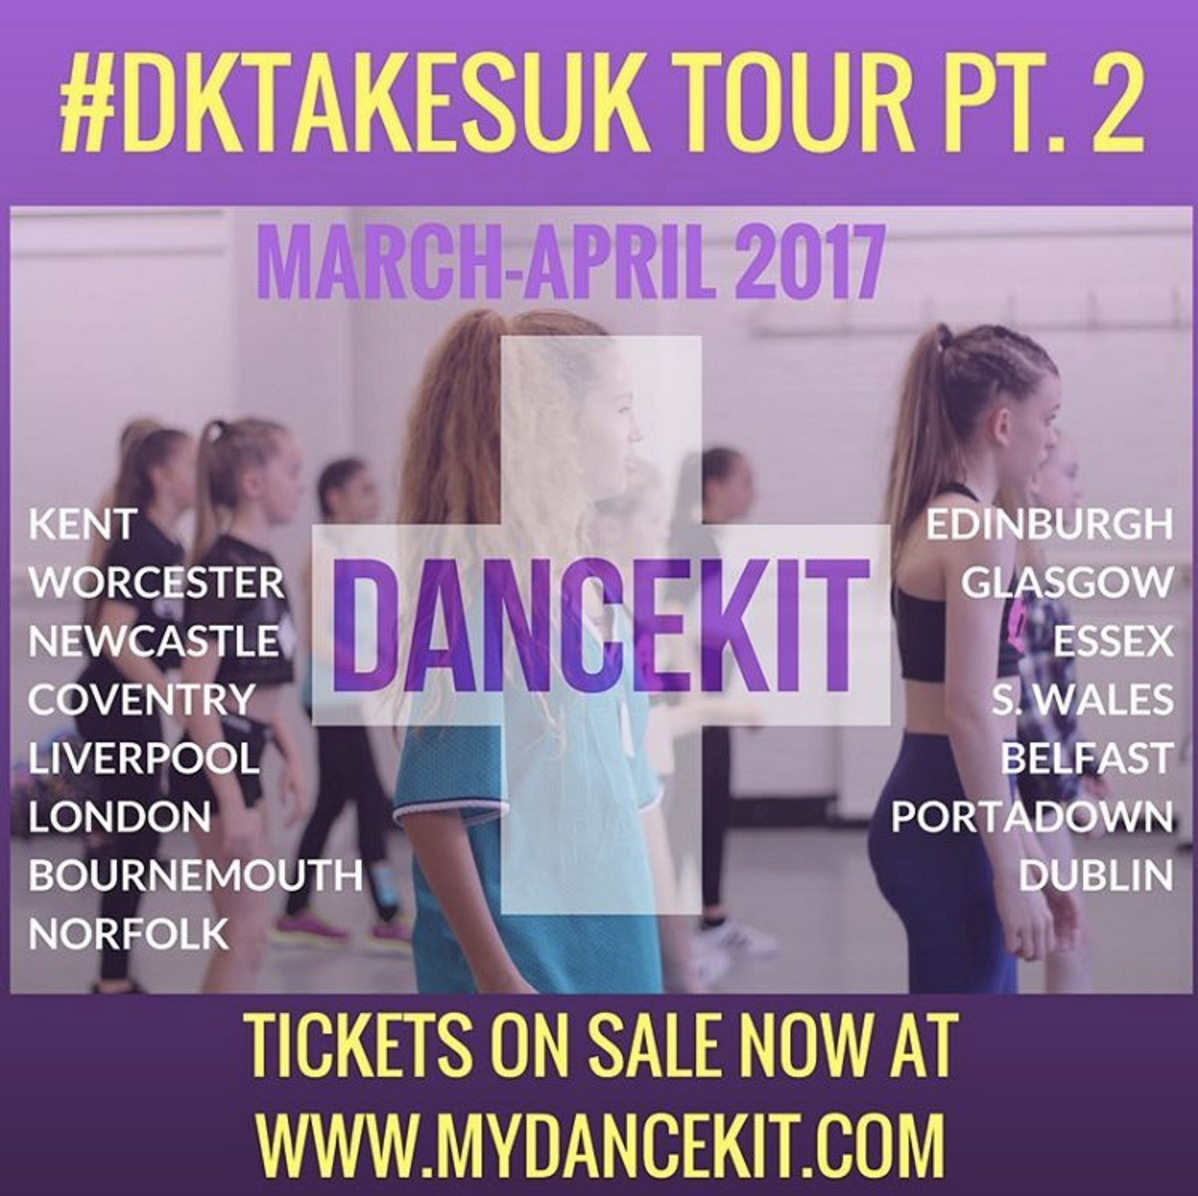 DANCEKIT UK Tour